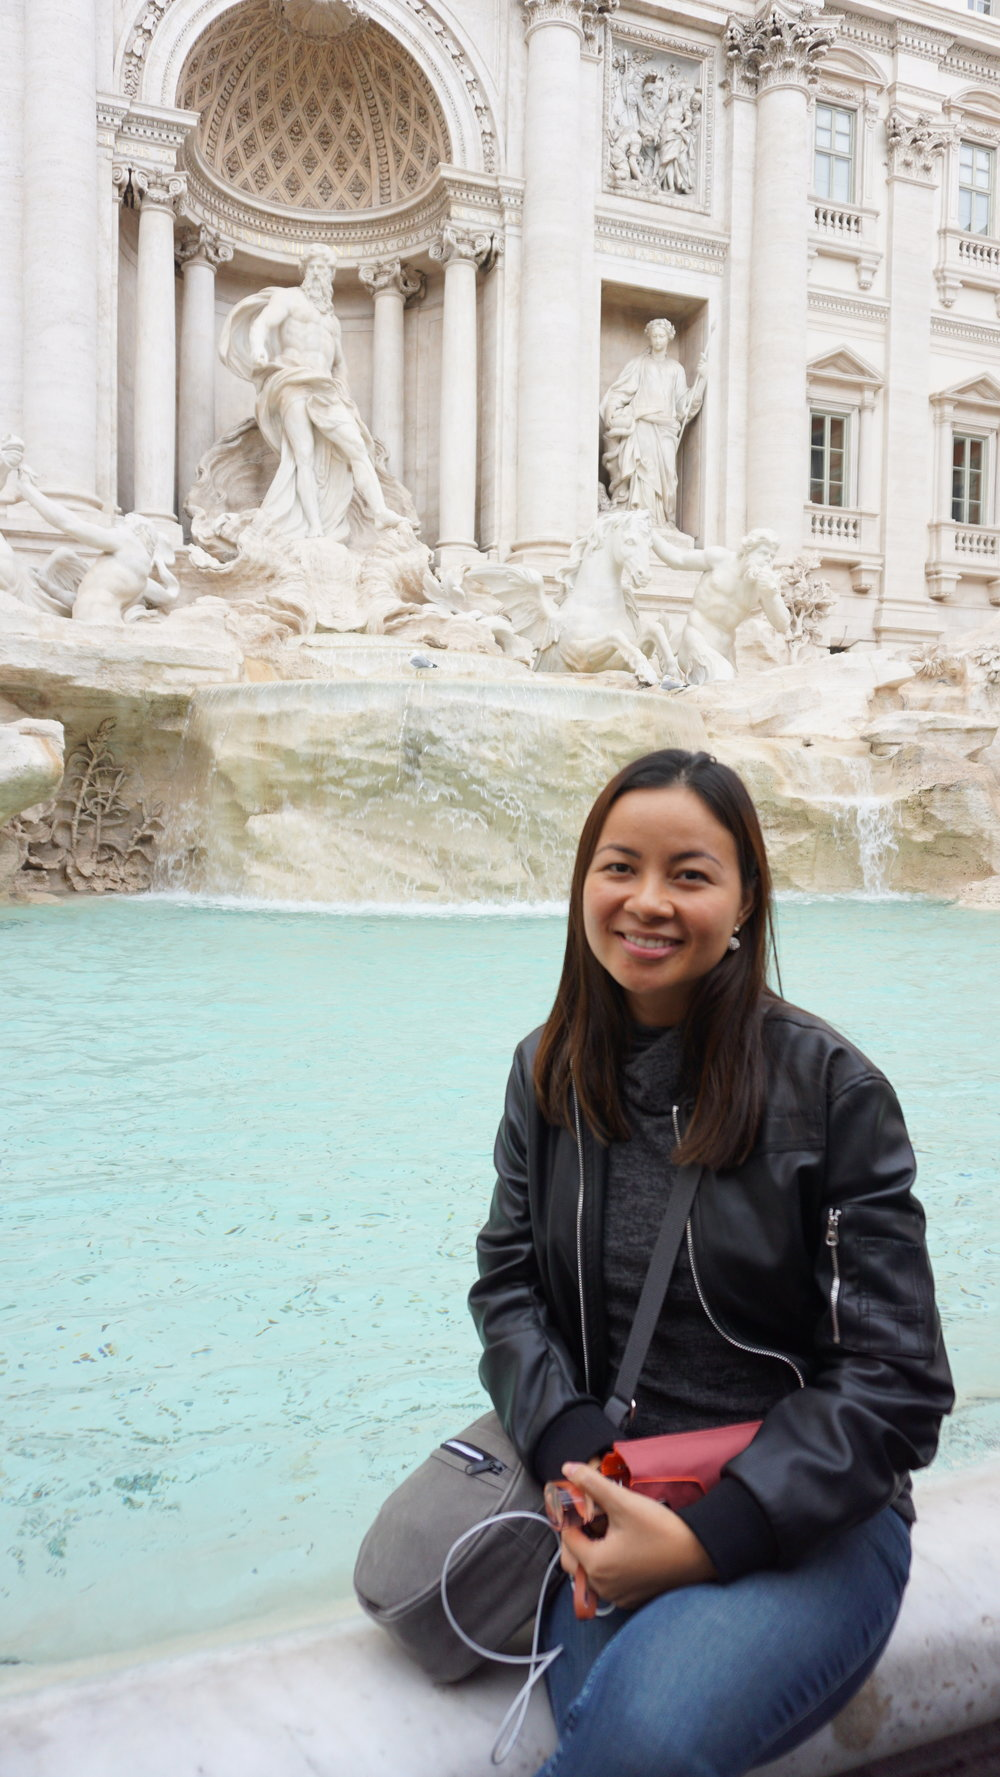 There were so many tourists like me wanting to get a photo at the Trevi Fountain!